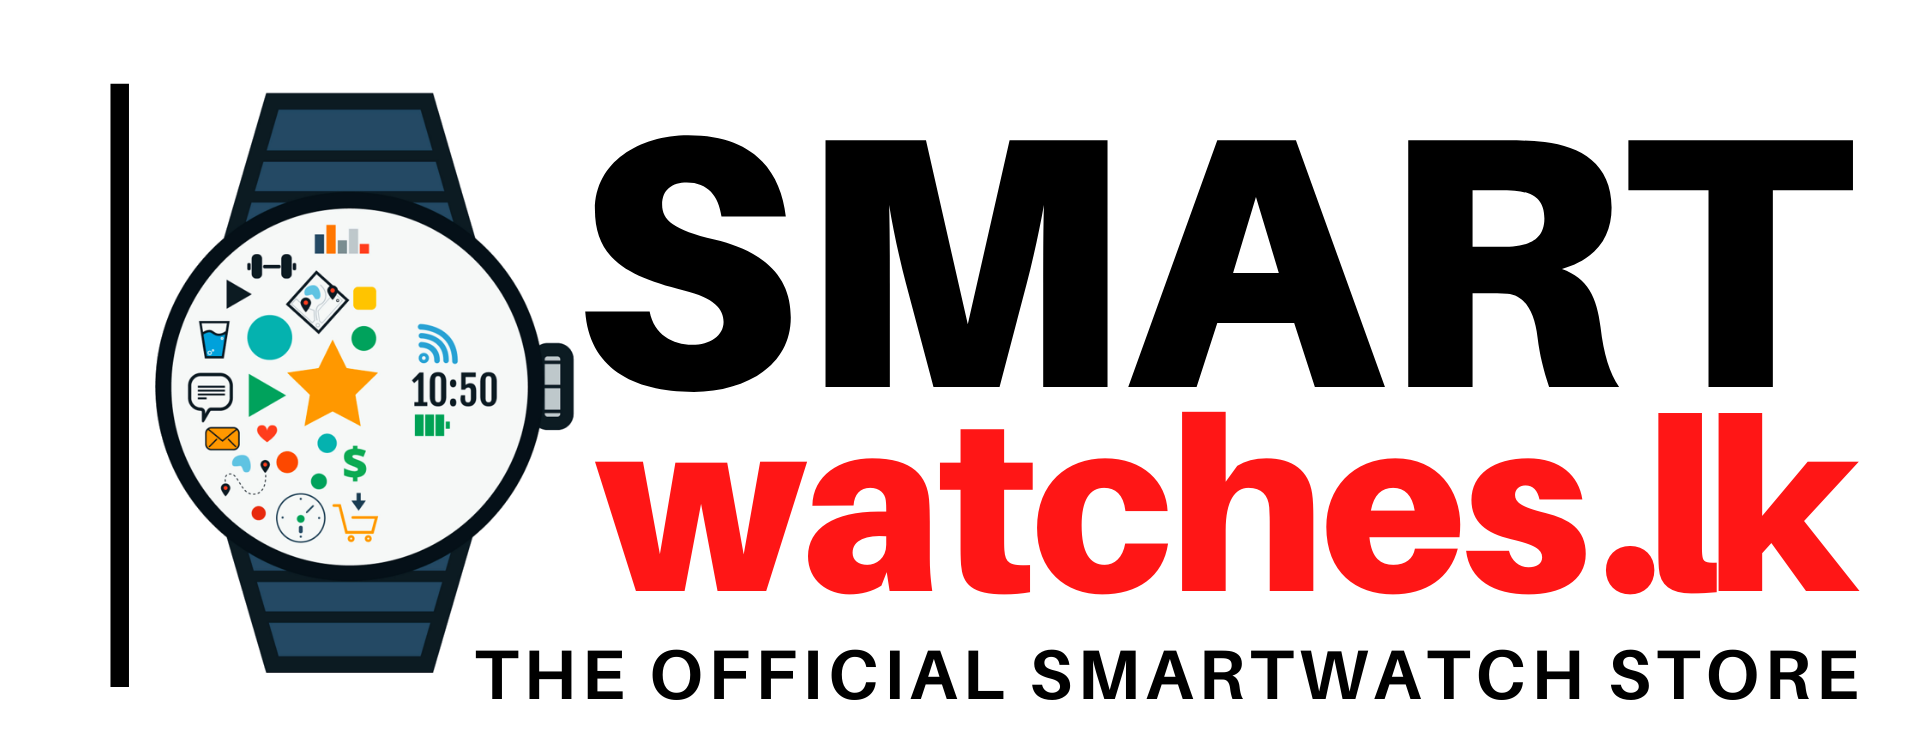 Smartwatches.lk